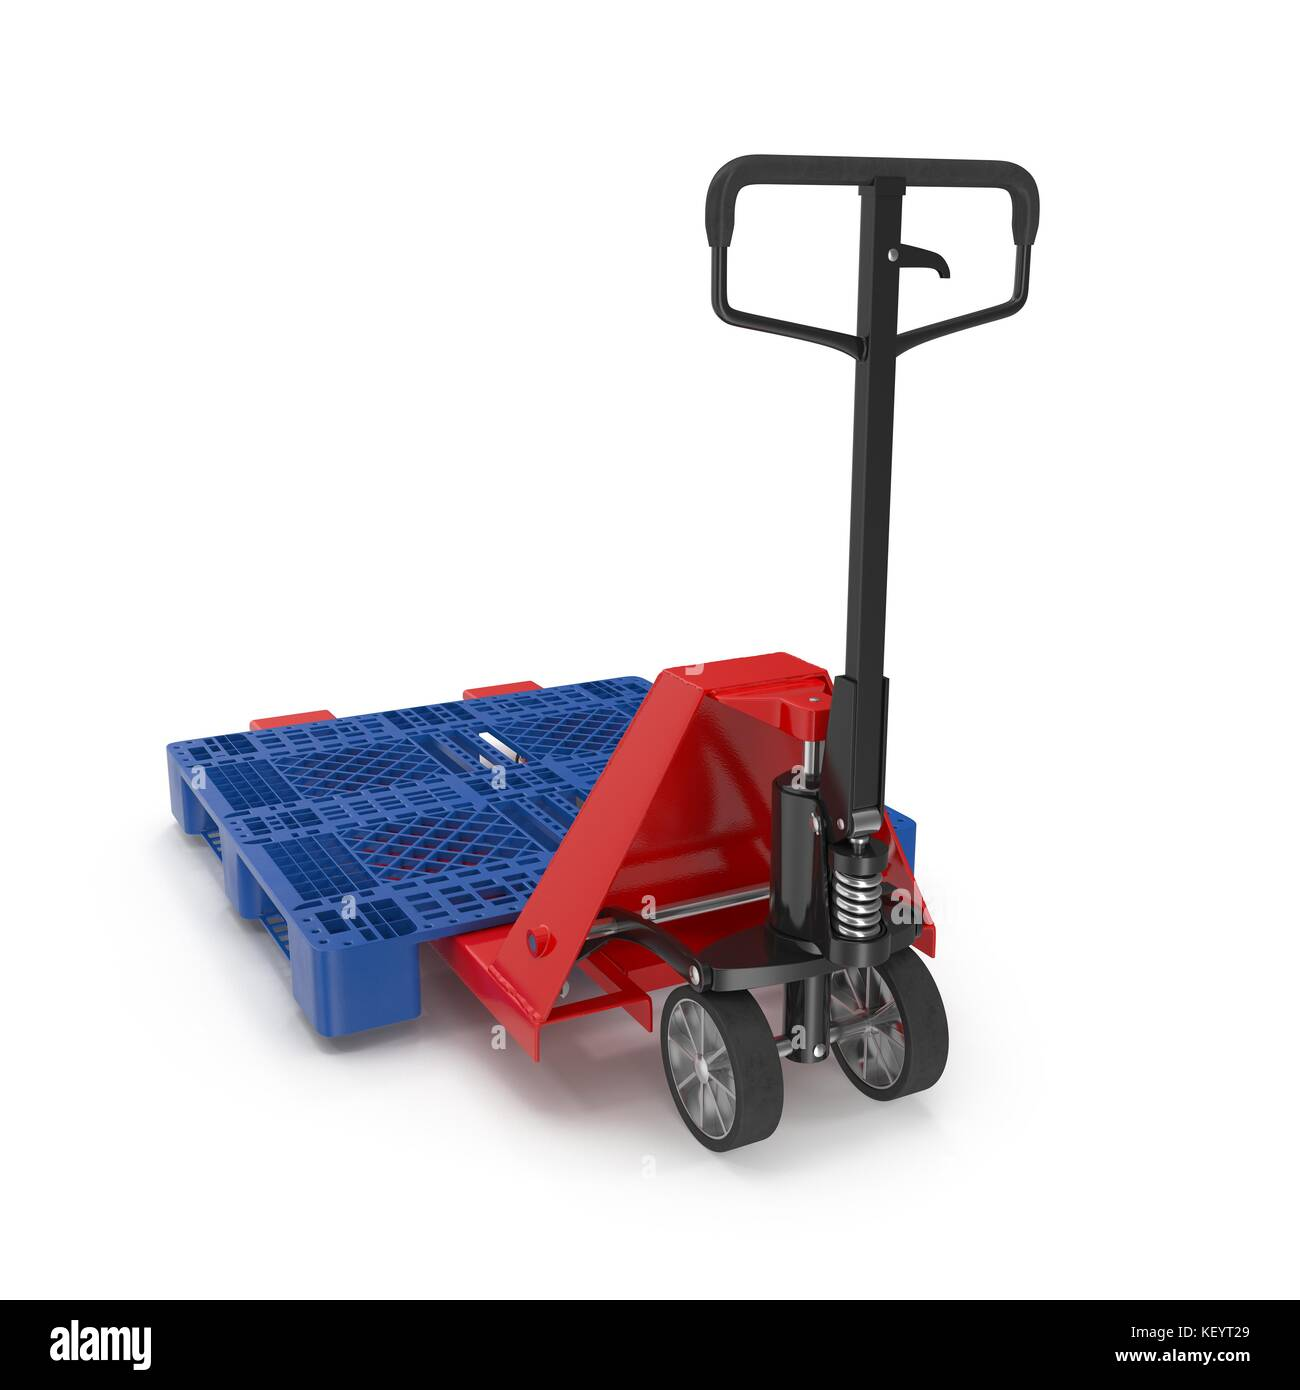 Empty Forklift Pallet Stock Photos & Empty Forklift Pallet Stock ...